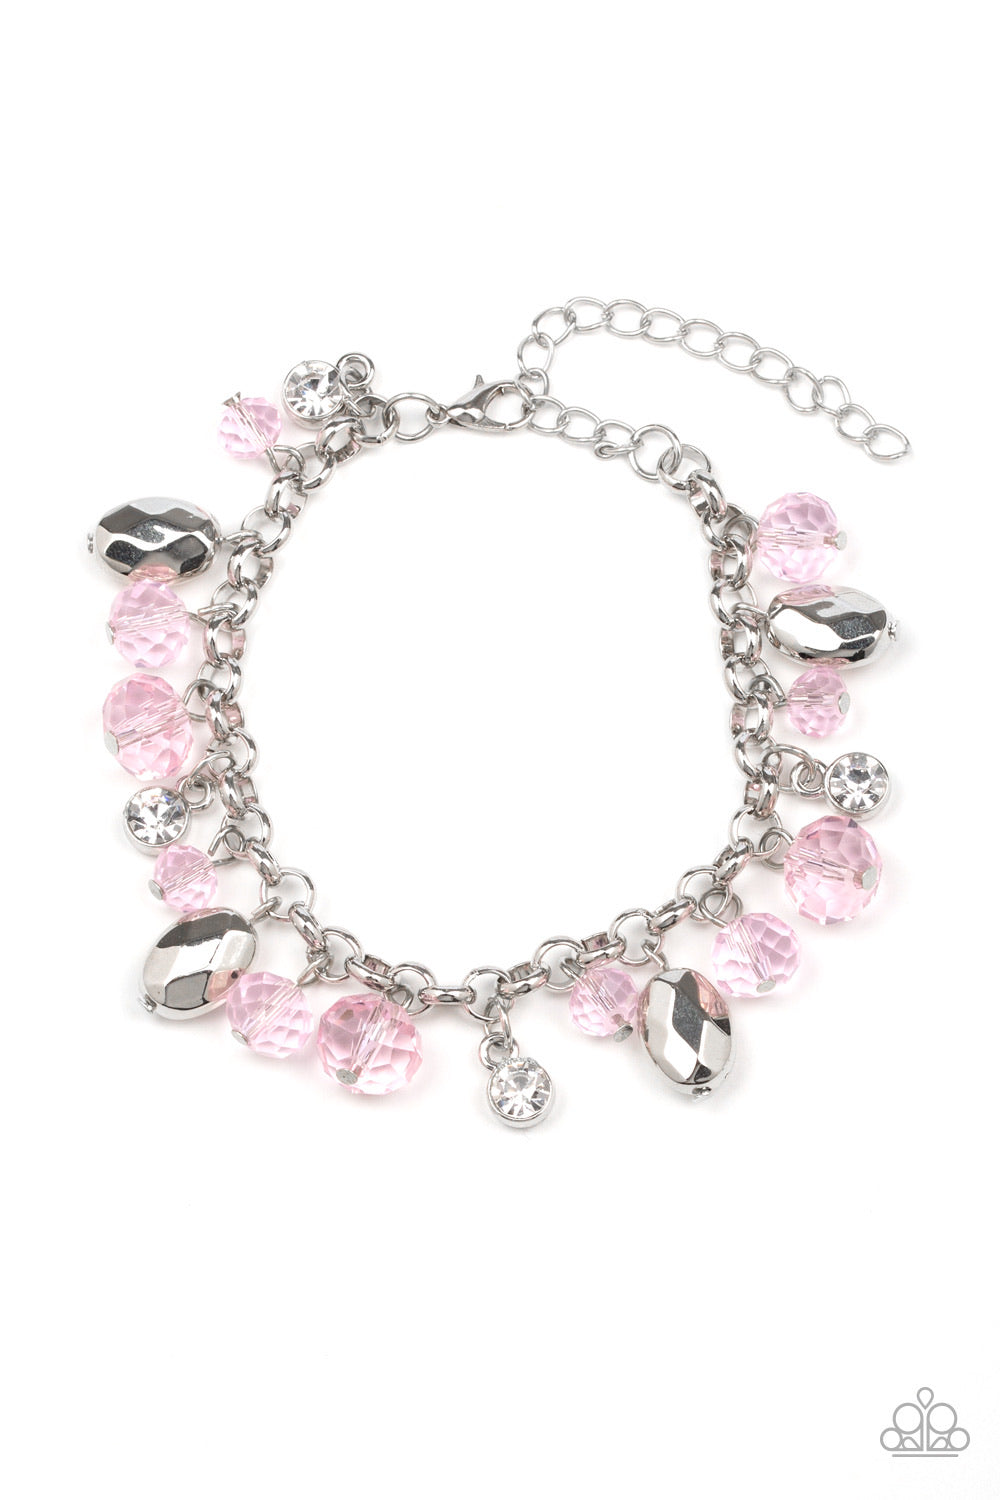 Dazing Dazzle - Pink Bracelet - Paparazzi Accessories